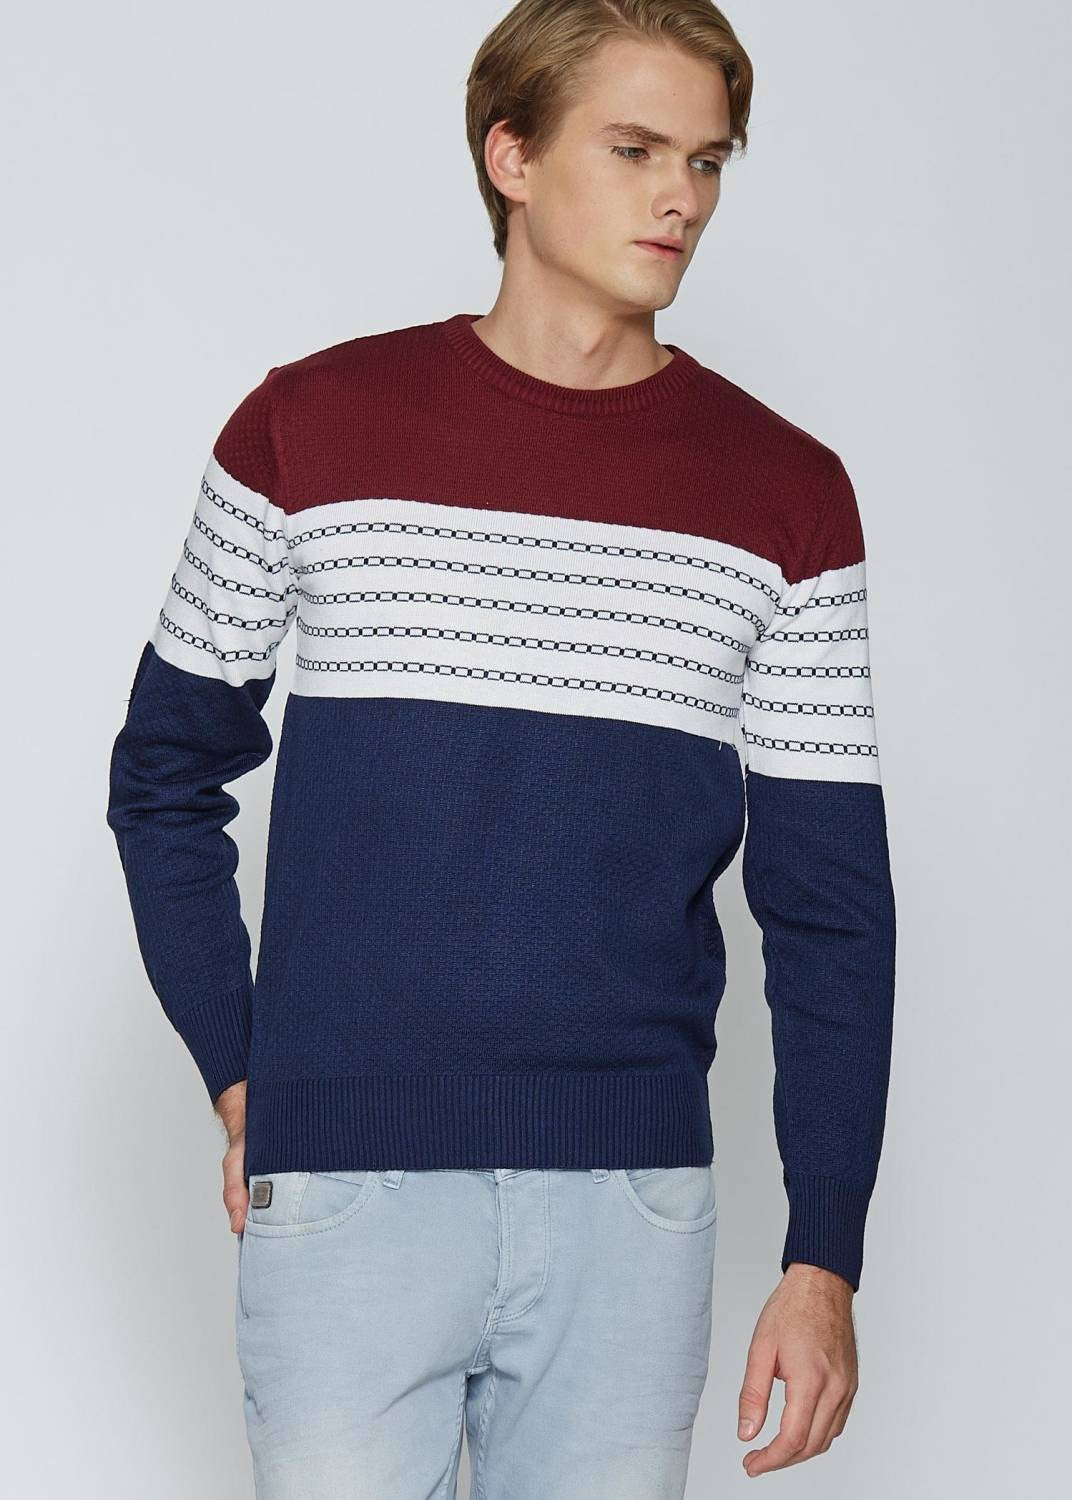 Men's Patterned  Red Pullover - THE UNIQUE FIT